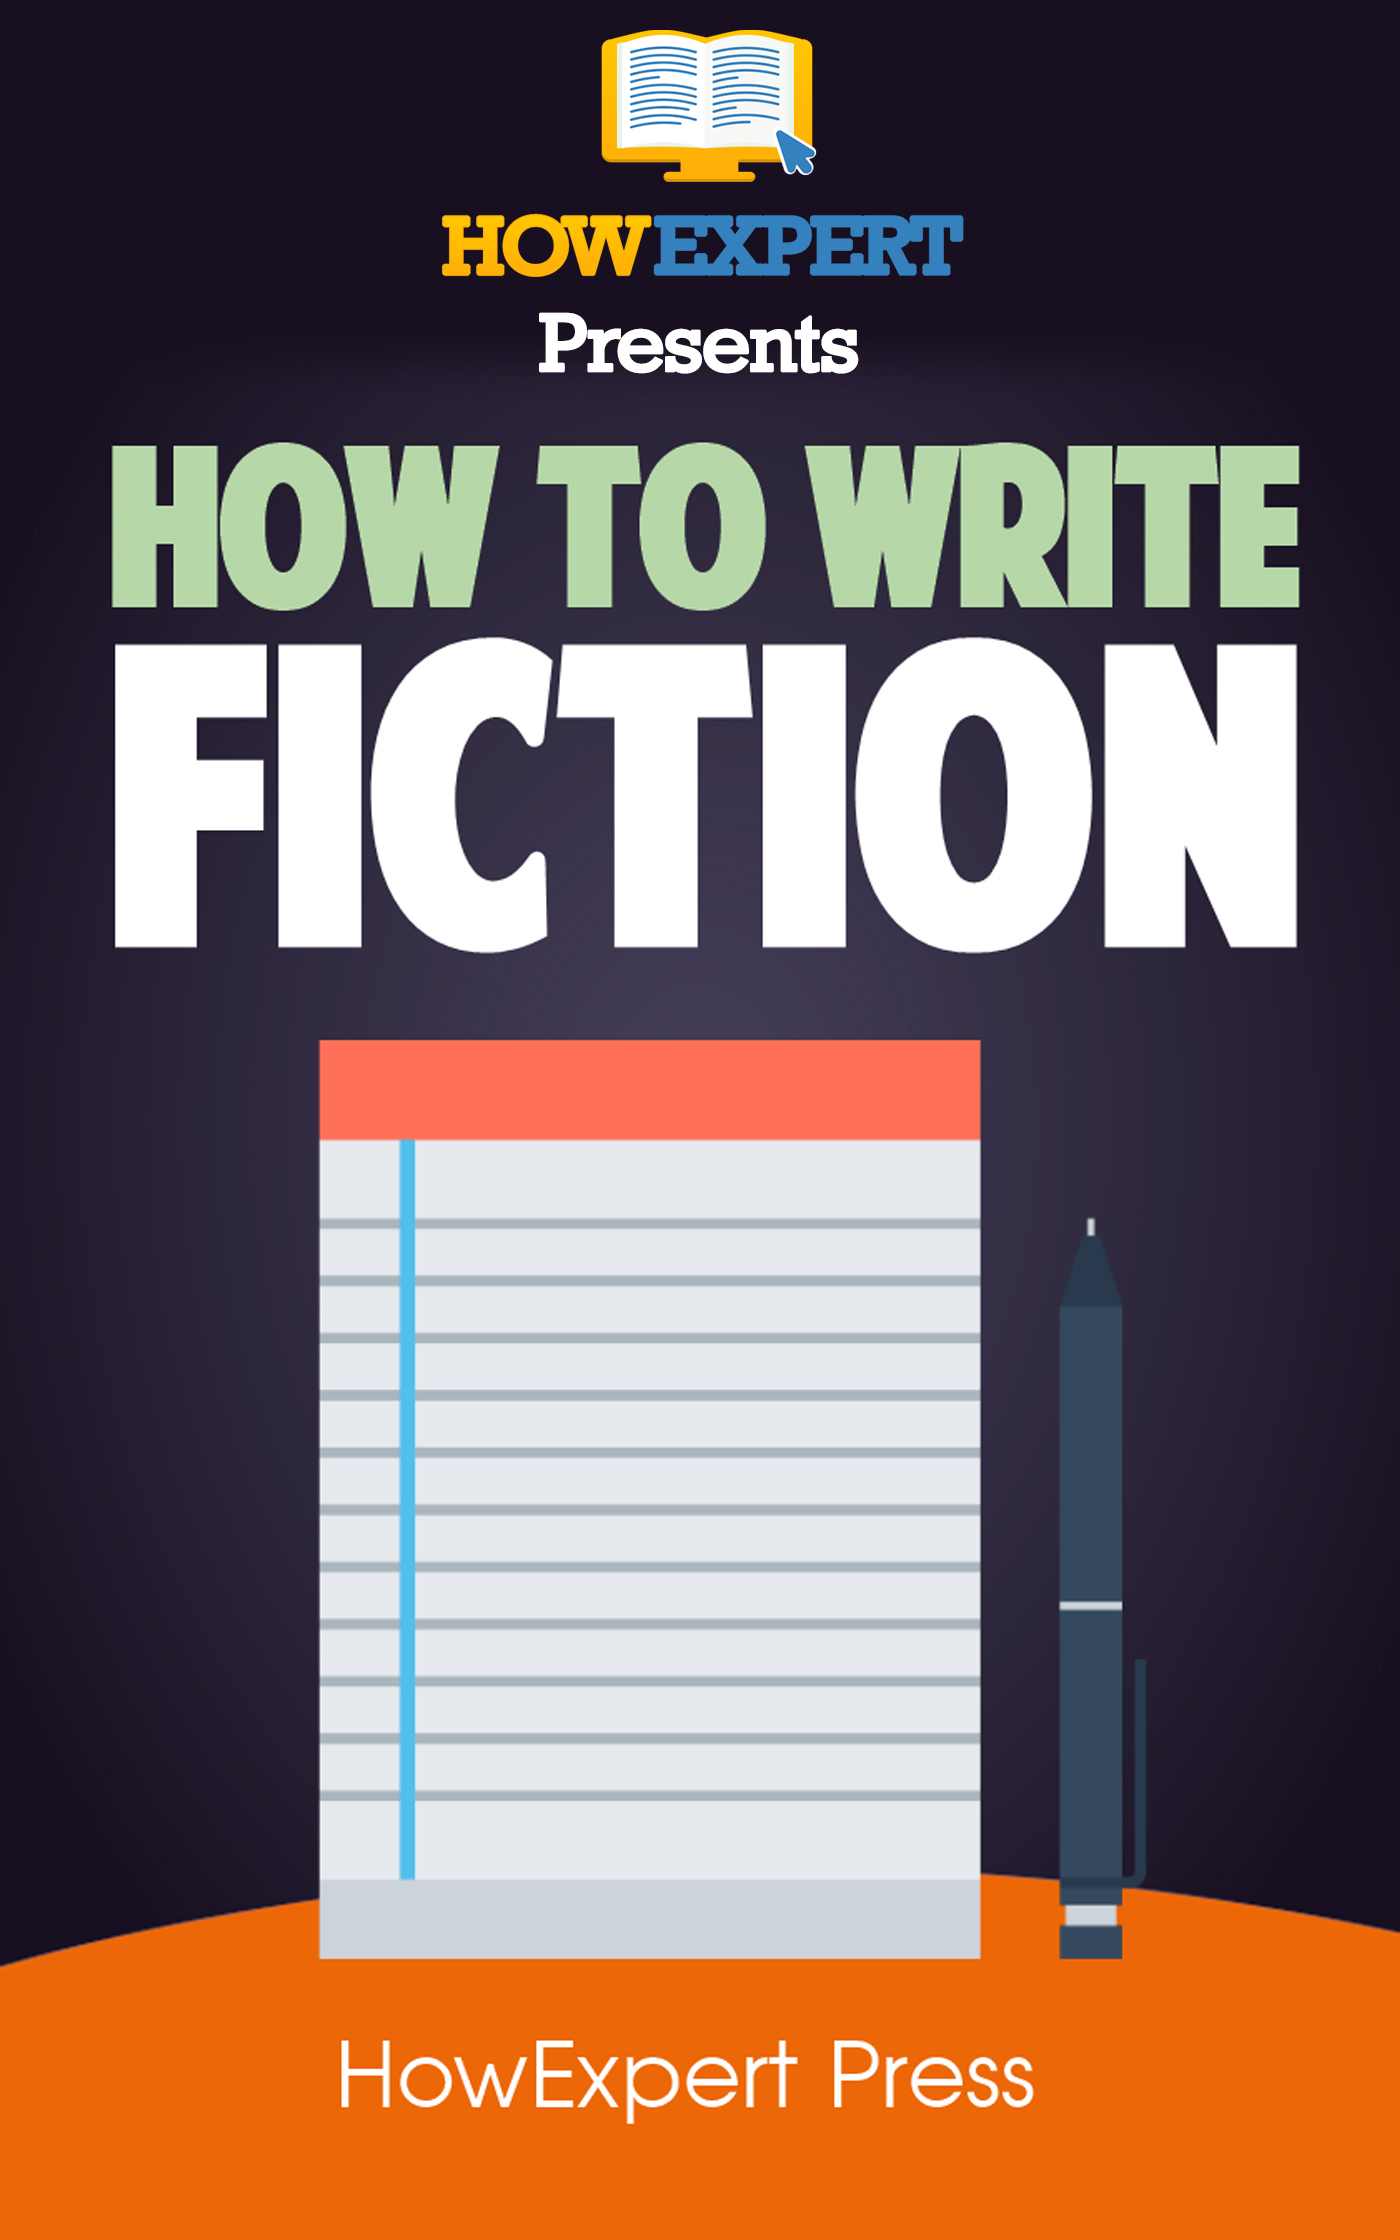 how we can learn from fictional